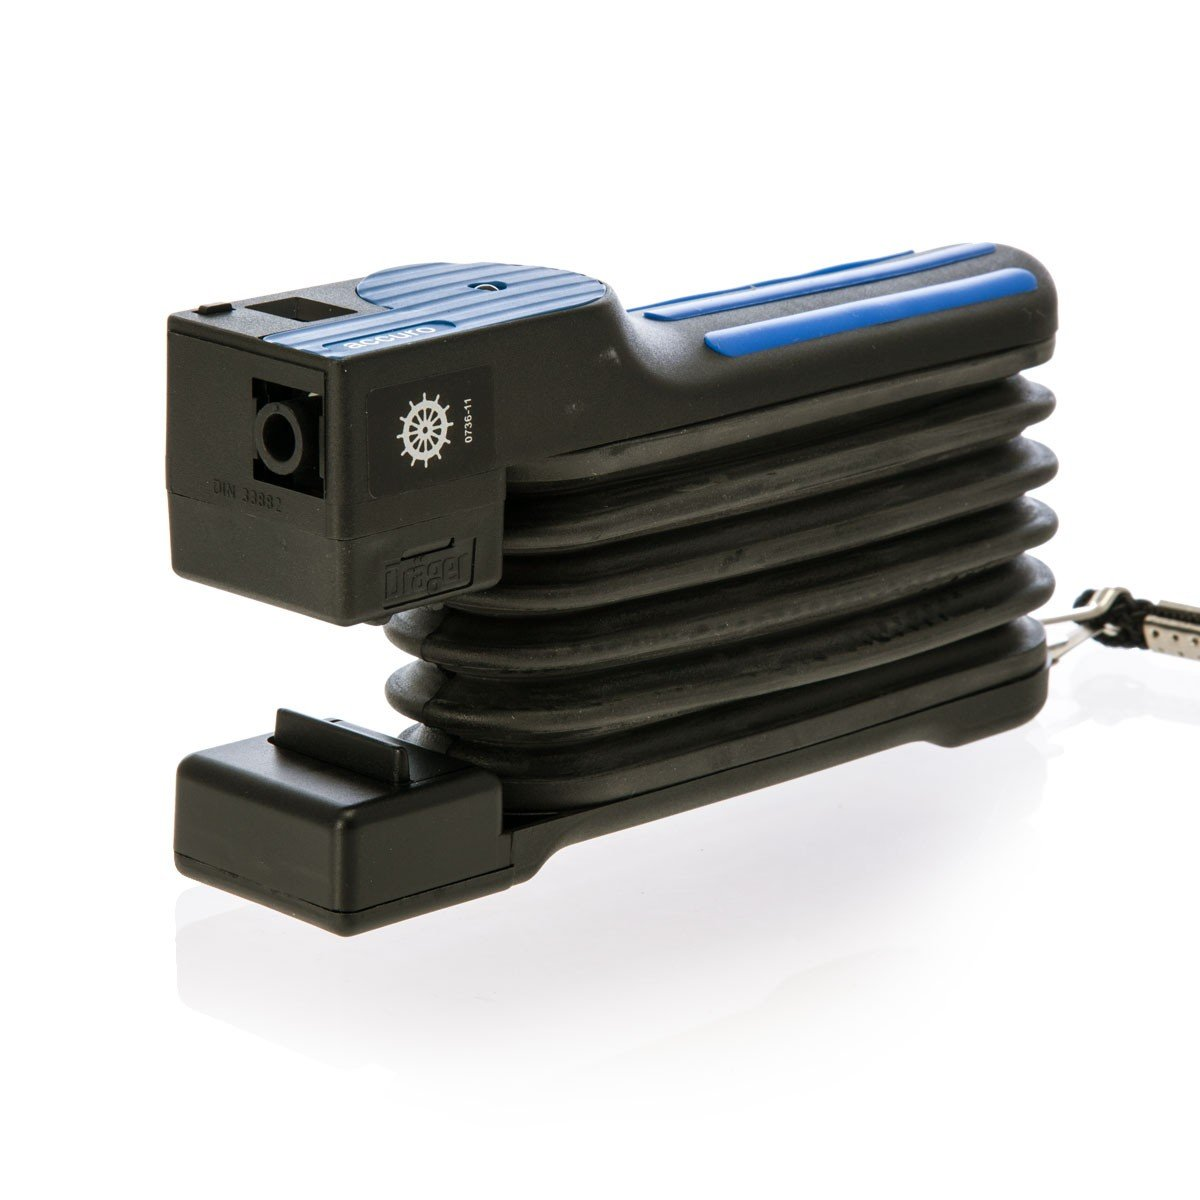 Drager Gas Detection Pump (Accuro)